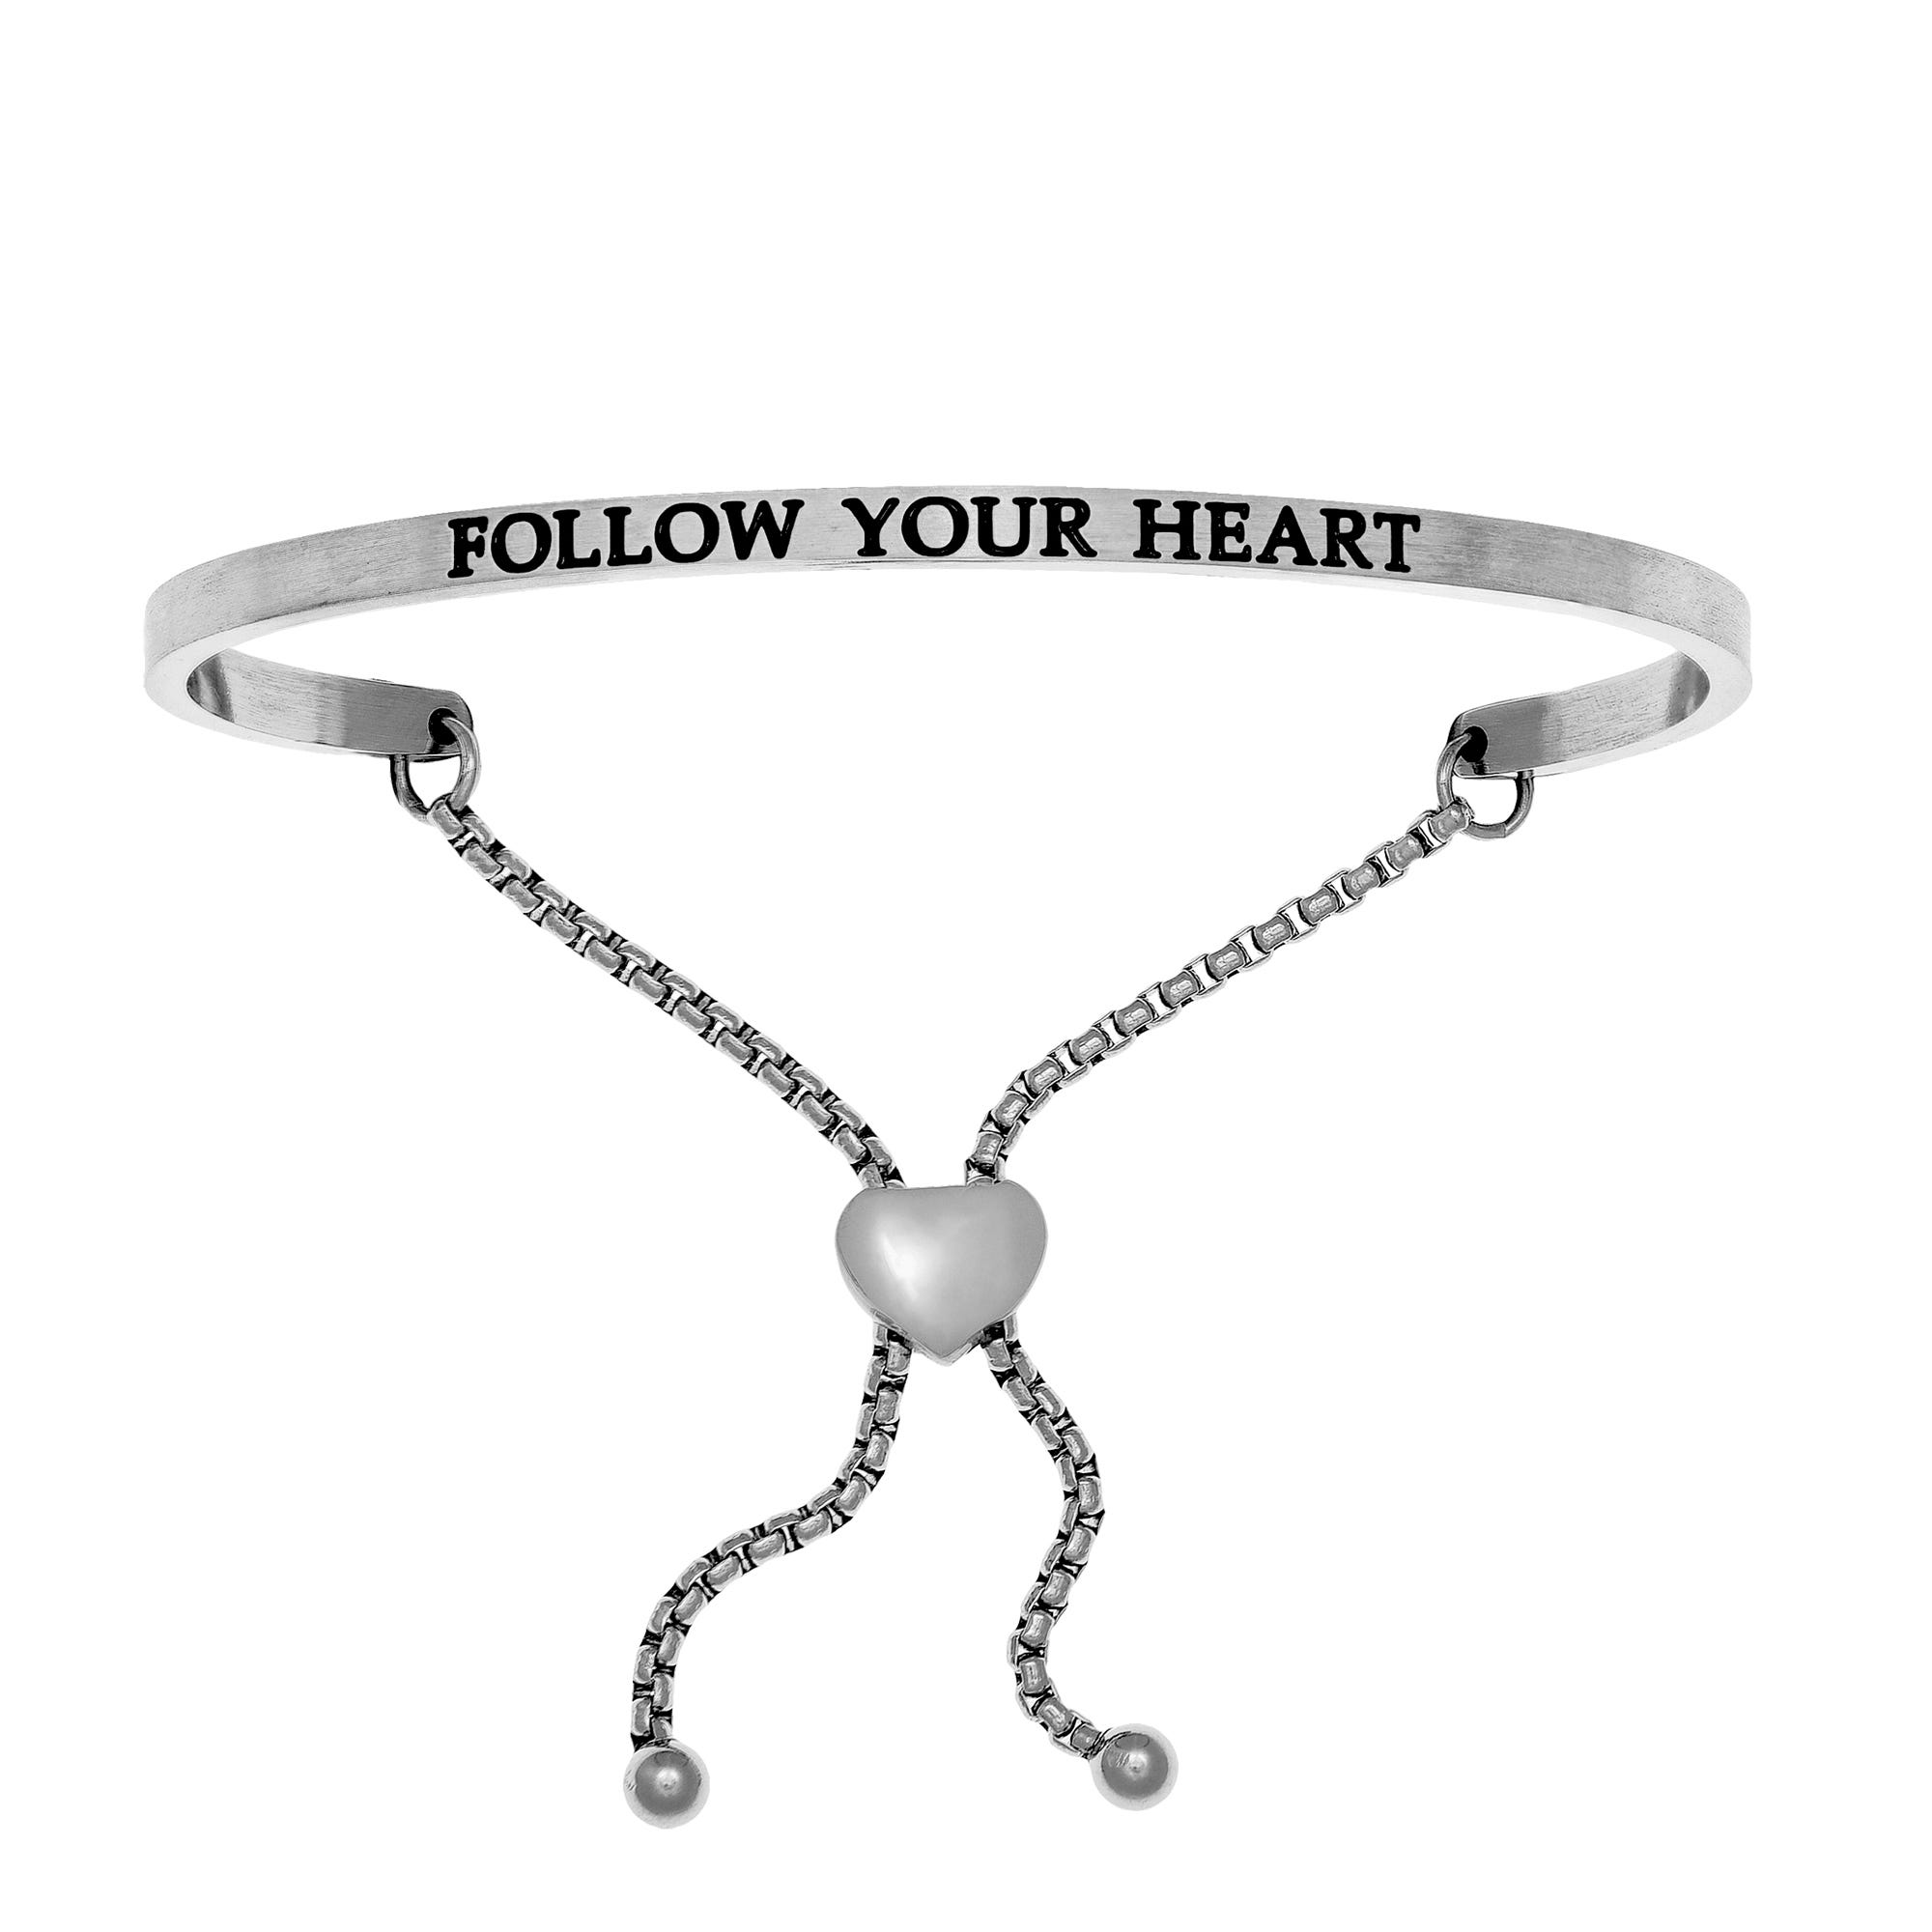 Follow Your Heart. Intuitions Bolo Bracelet in White Stainless Steel